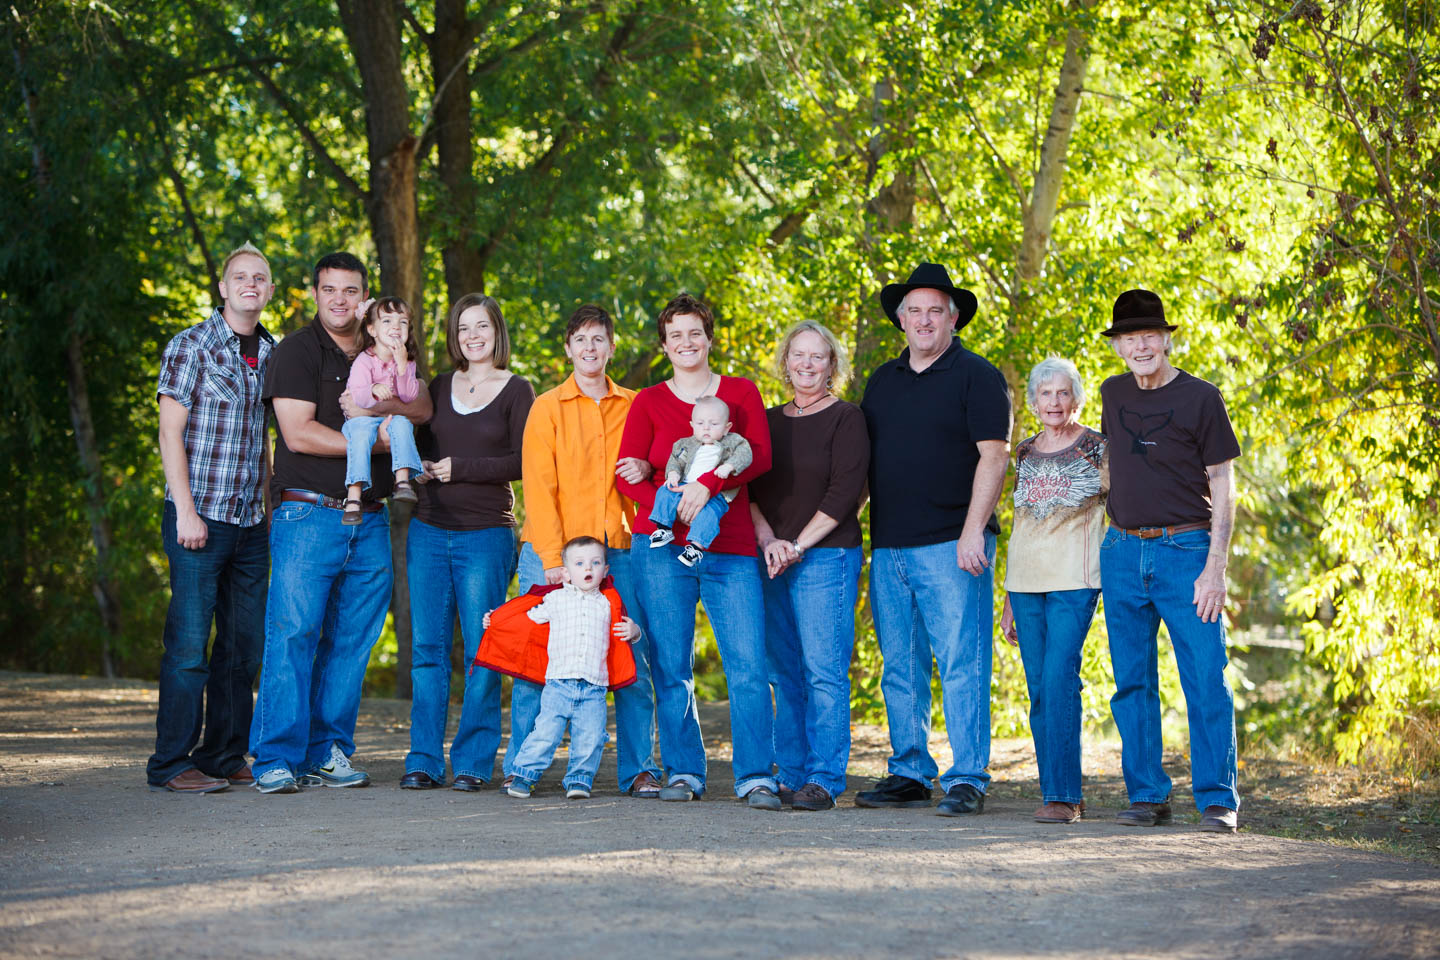 Wheeler Farm is a great location for family portraits and photographs